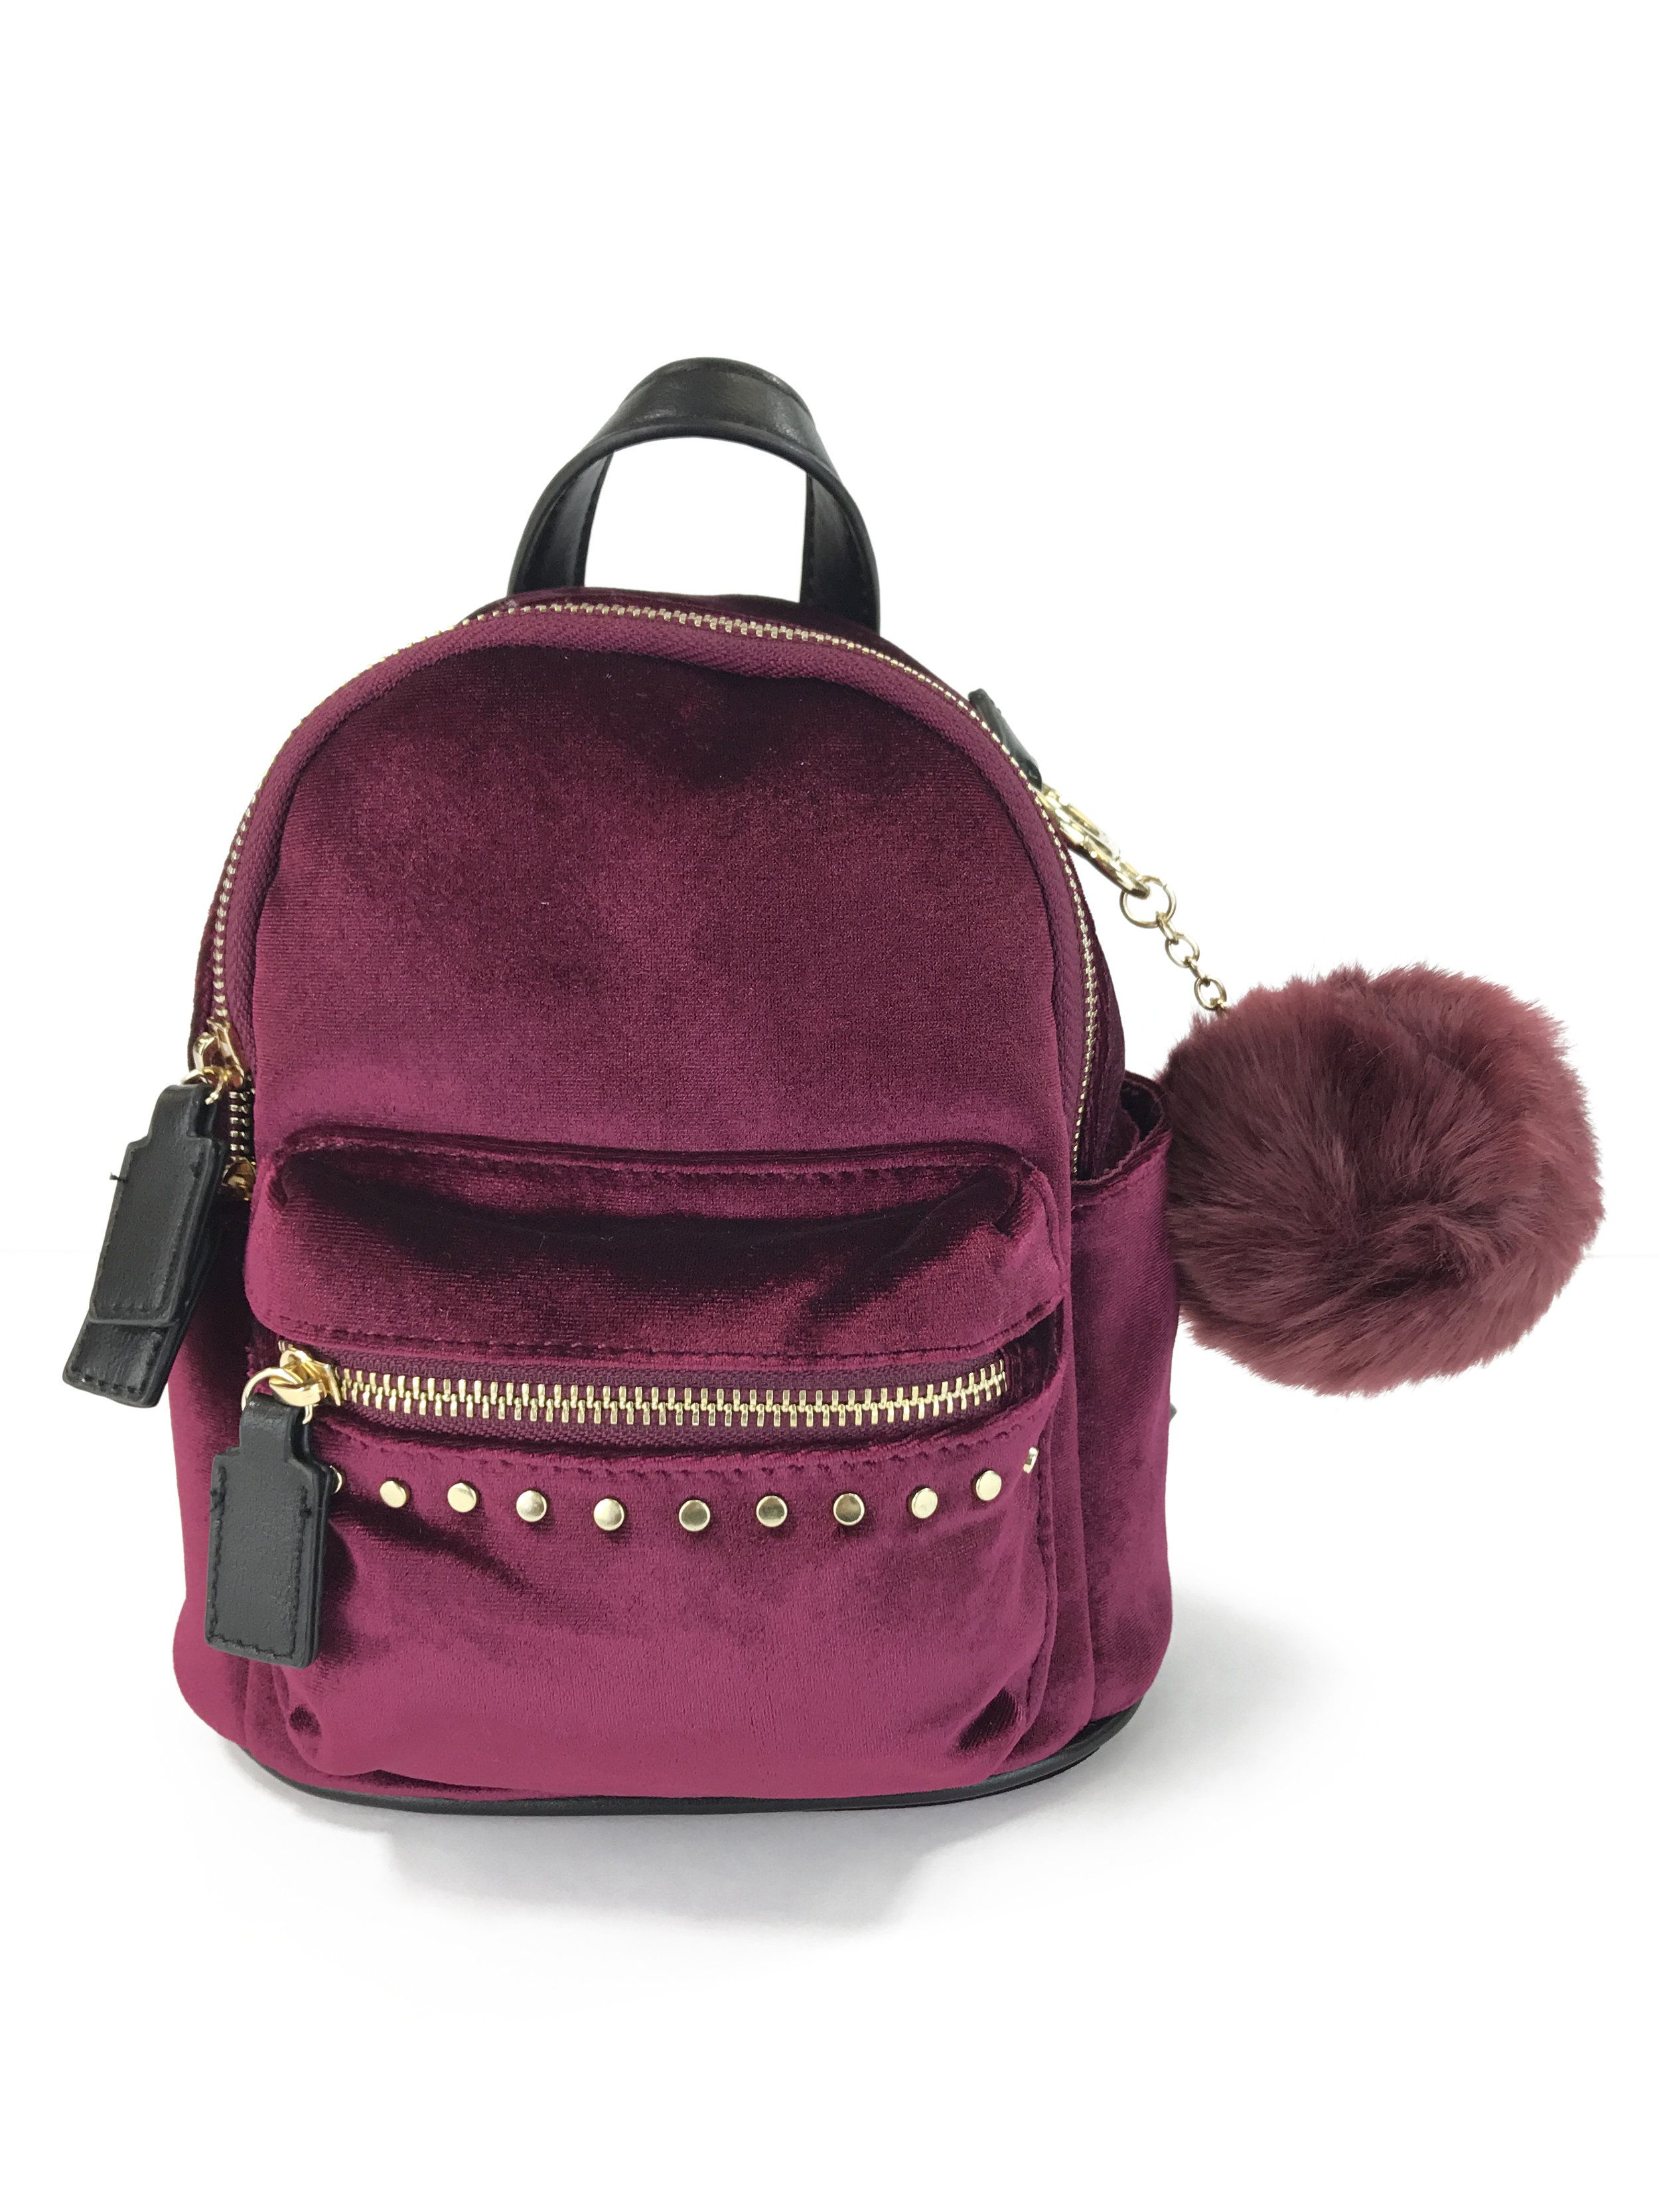 Faux fur backpack with adjustable straps, handle, inside compartments,  pockets, zipped outer . 0ebb95c4f7